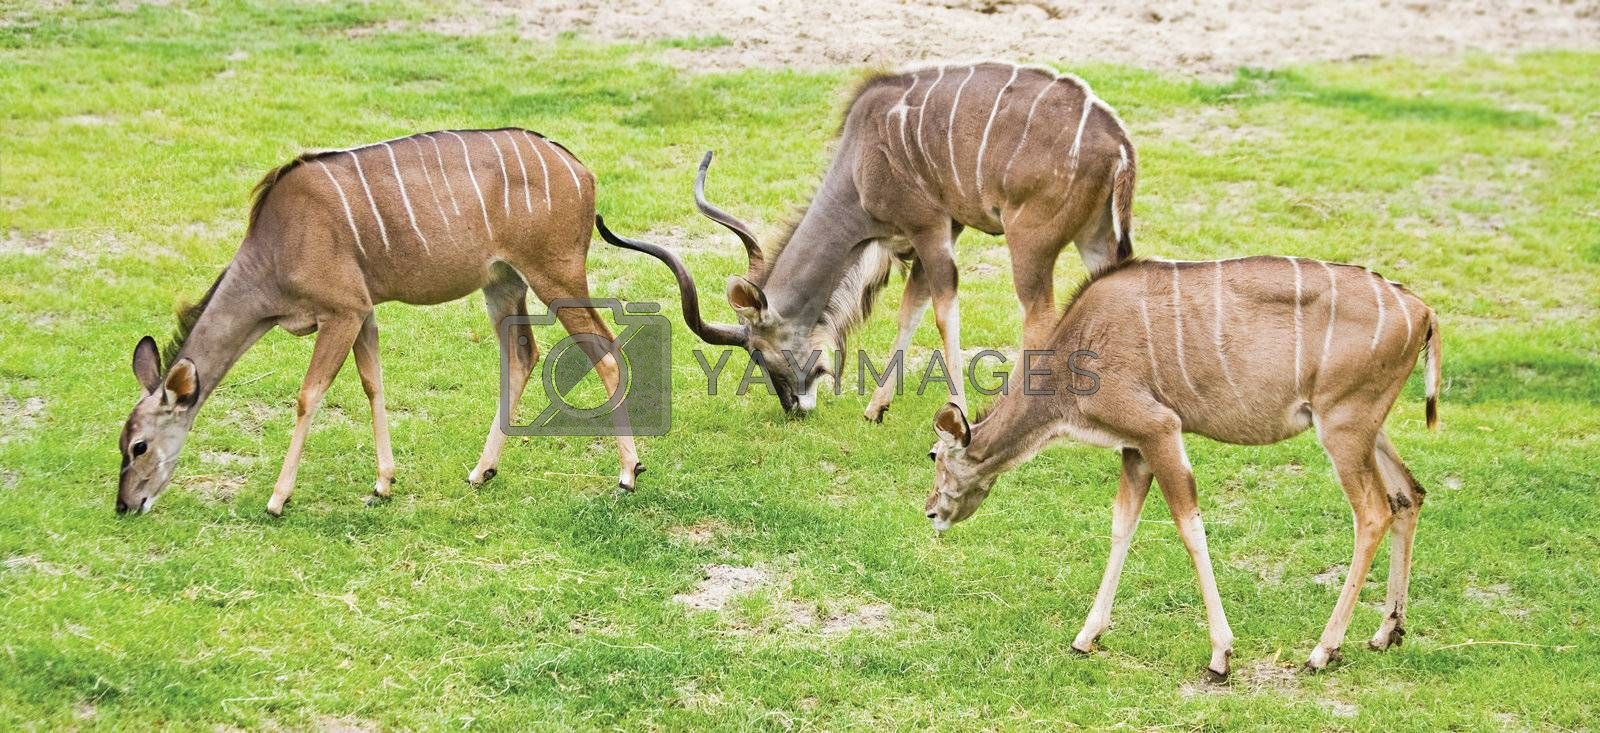 Group of Greater Kudus - Tragelaphus strepsiceros - grazing on field